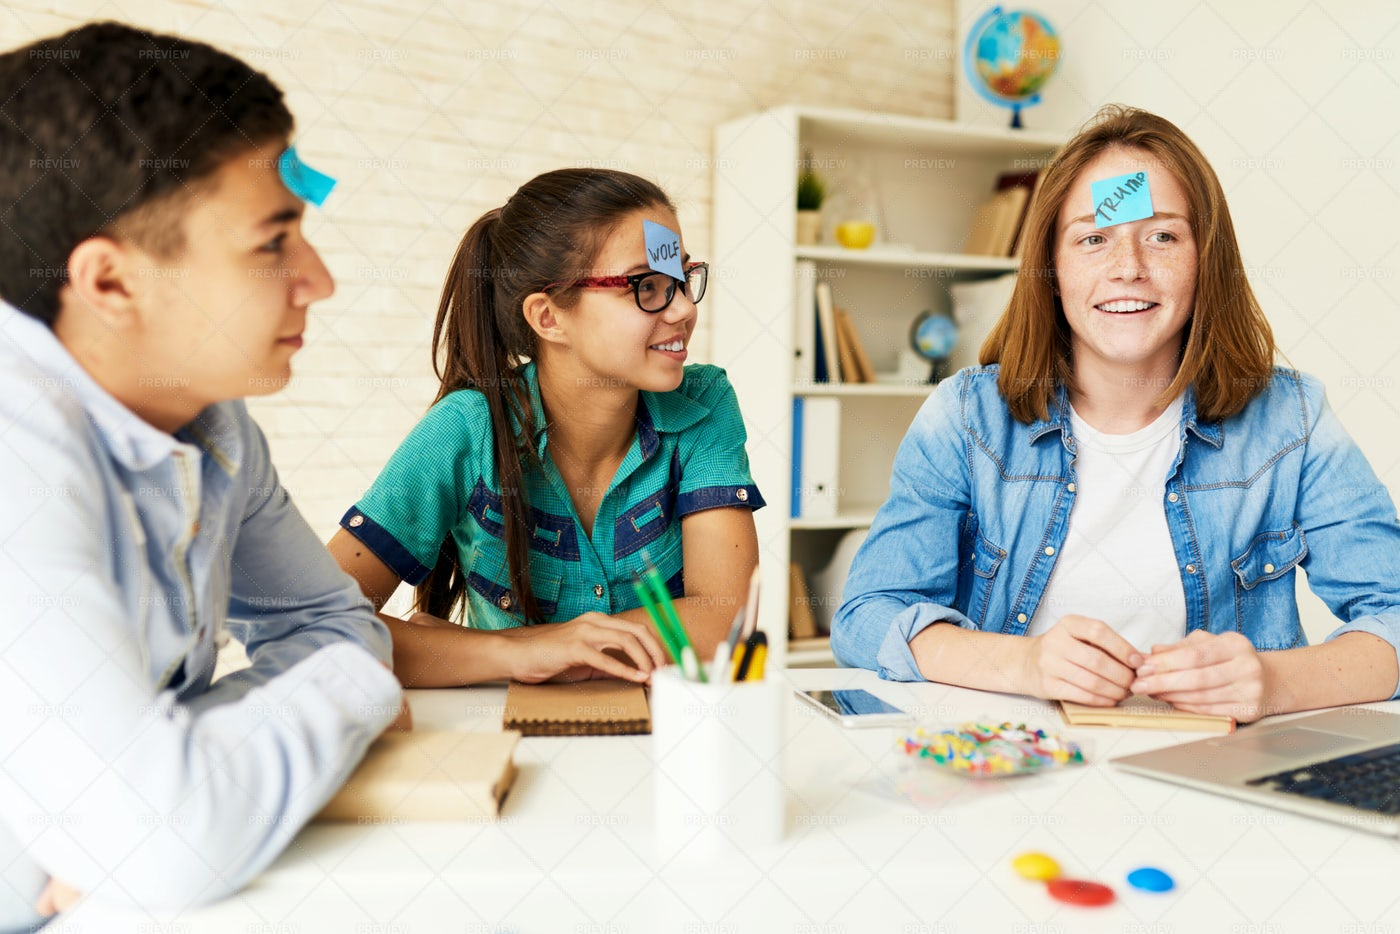 Children Playing Games In Classroom: Stock Photos